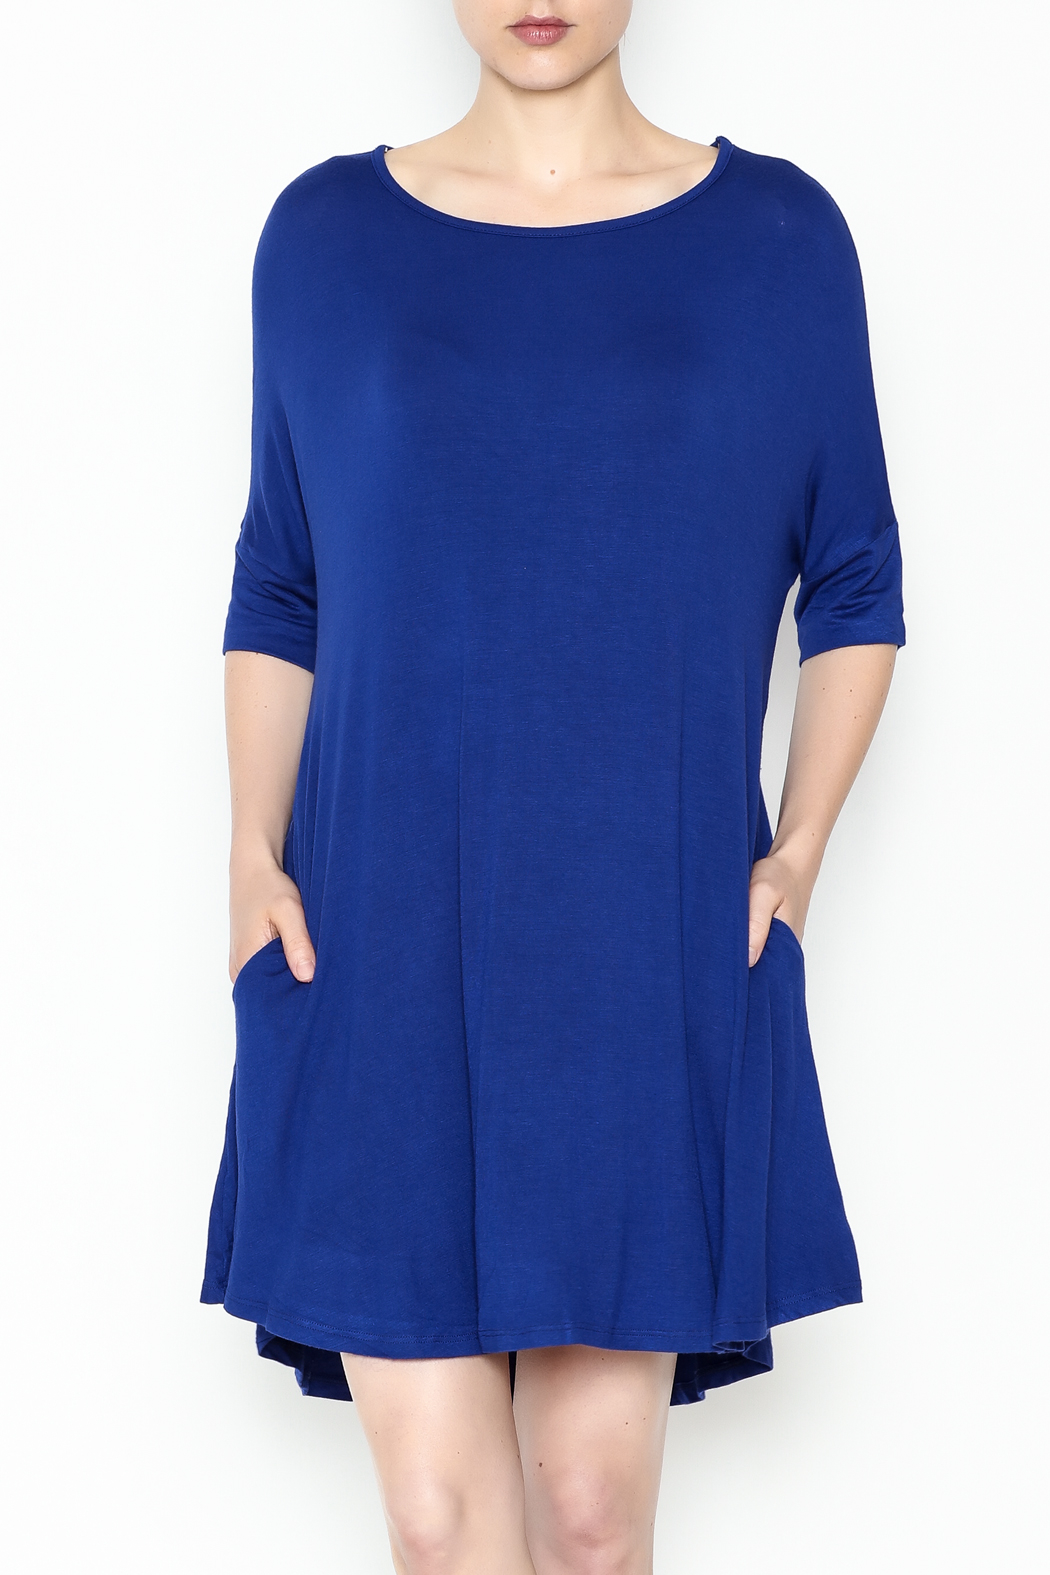 Umgee USA Royal Blue Tee Dress - Main Image